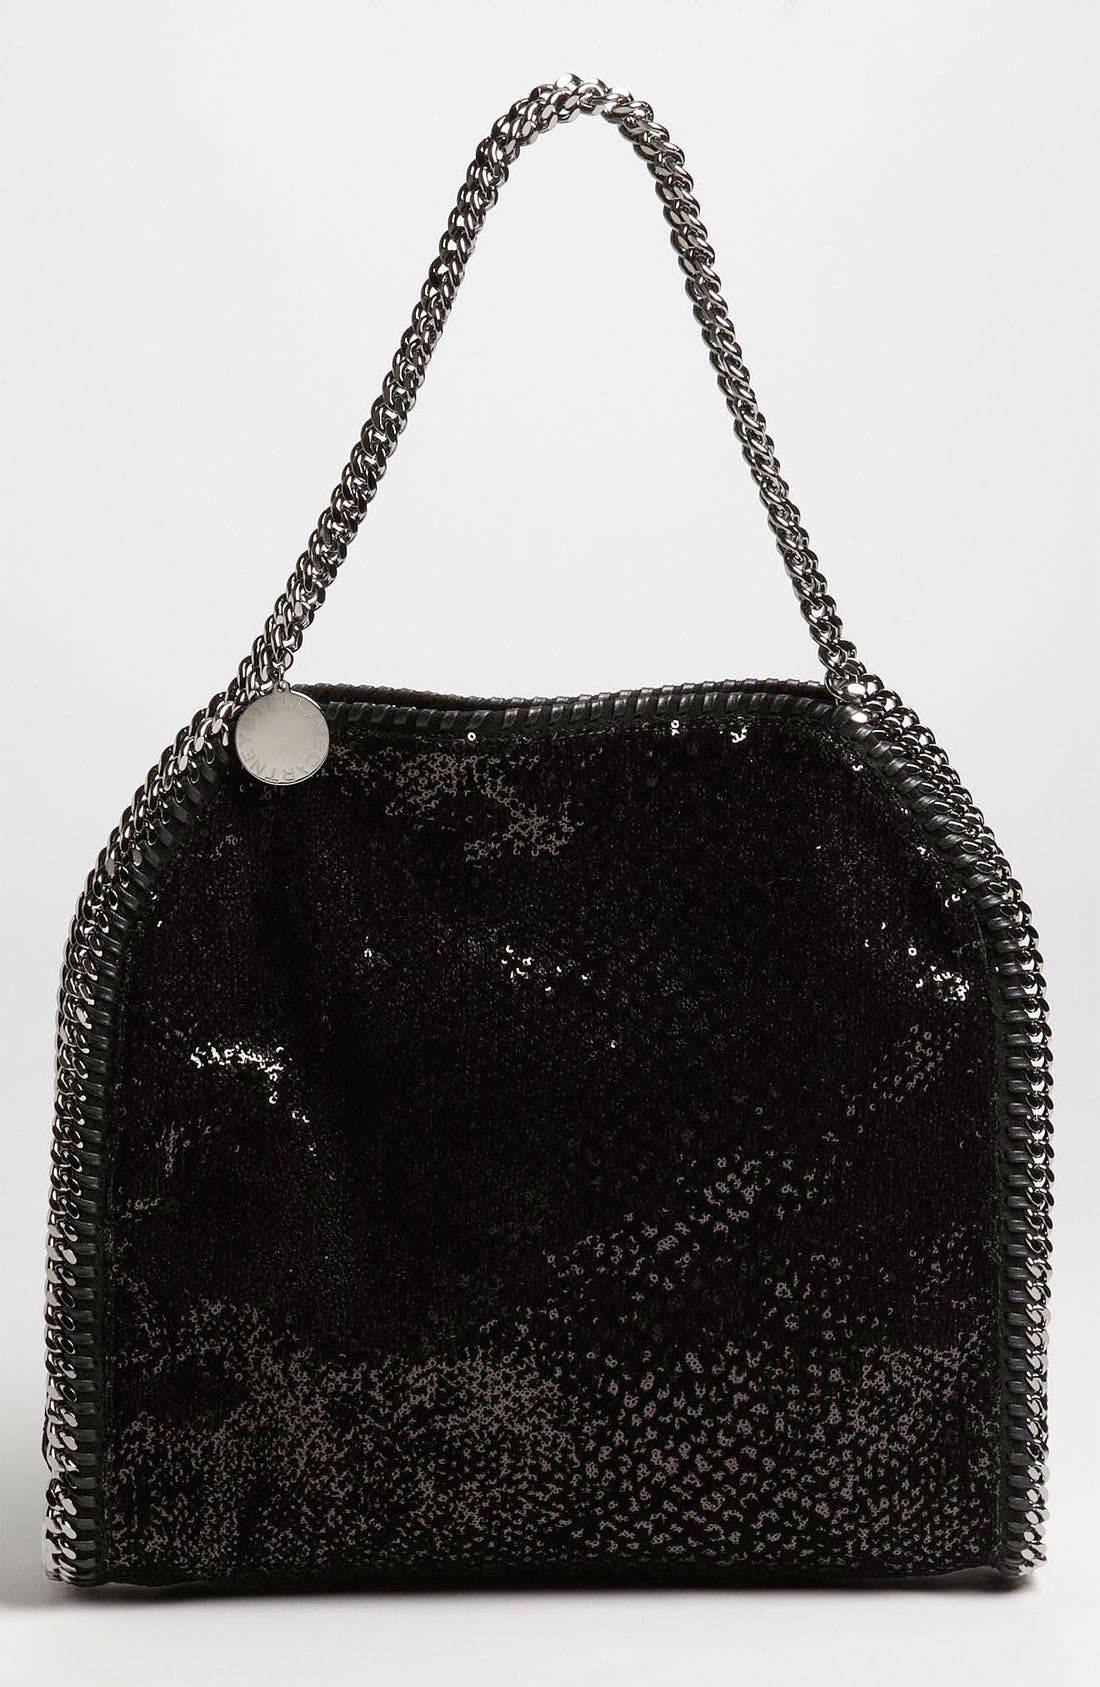 Alternate Image 1 Selected - Stella McCartney 'Falabella Paillettes - Small' Tote